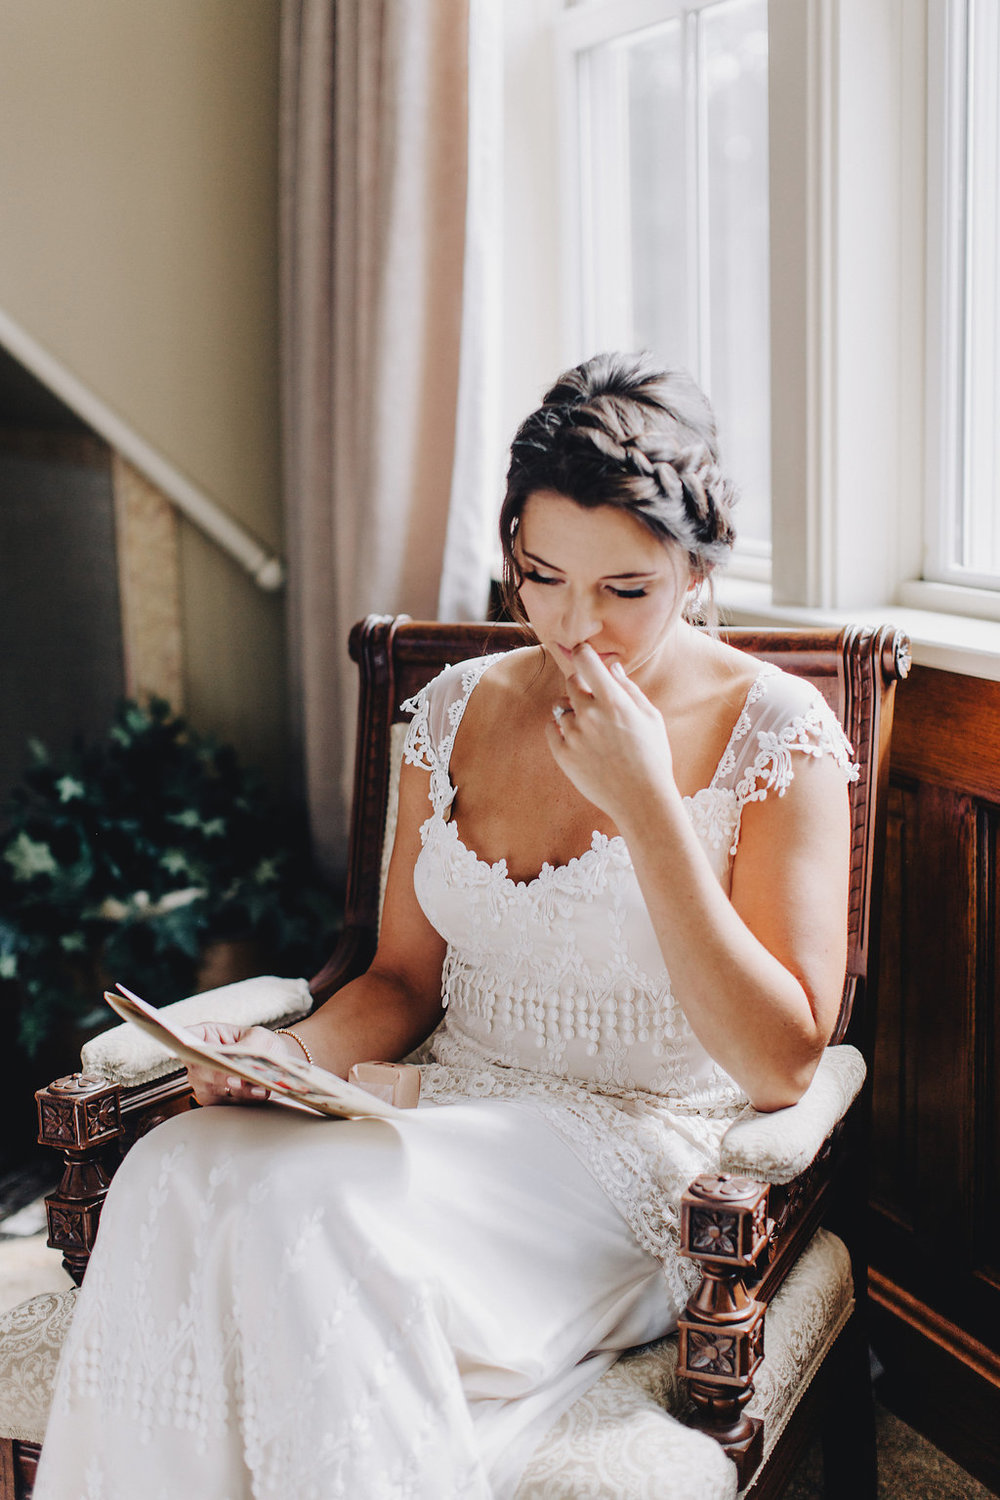 reading personal cards on the morning of your wedding  | Acowsay Videography | Matt Lien Photography | Sixpence Standard Wedding Blog